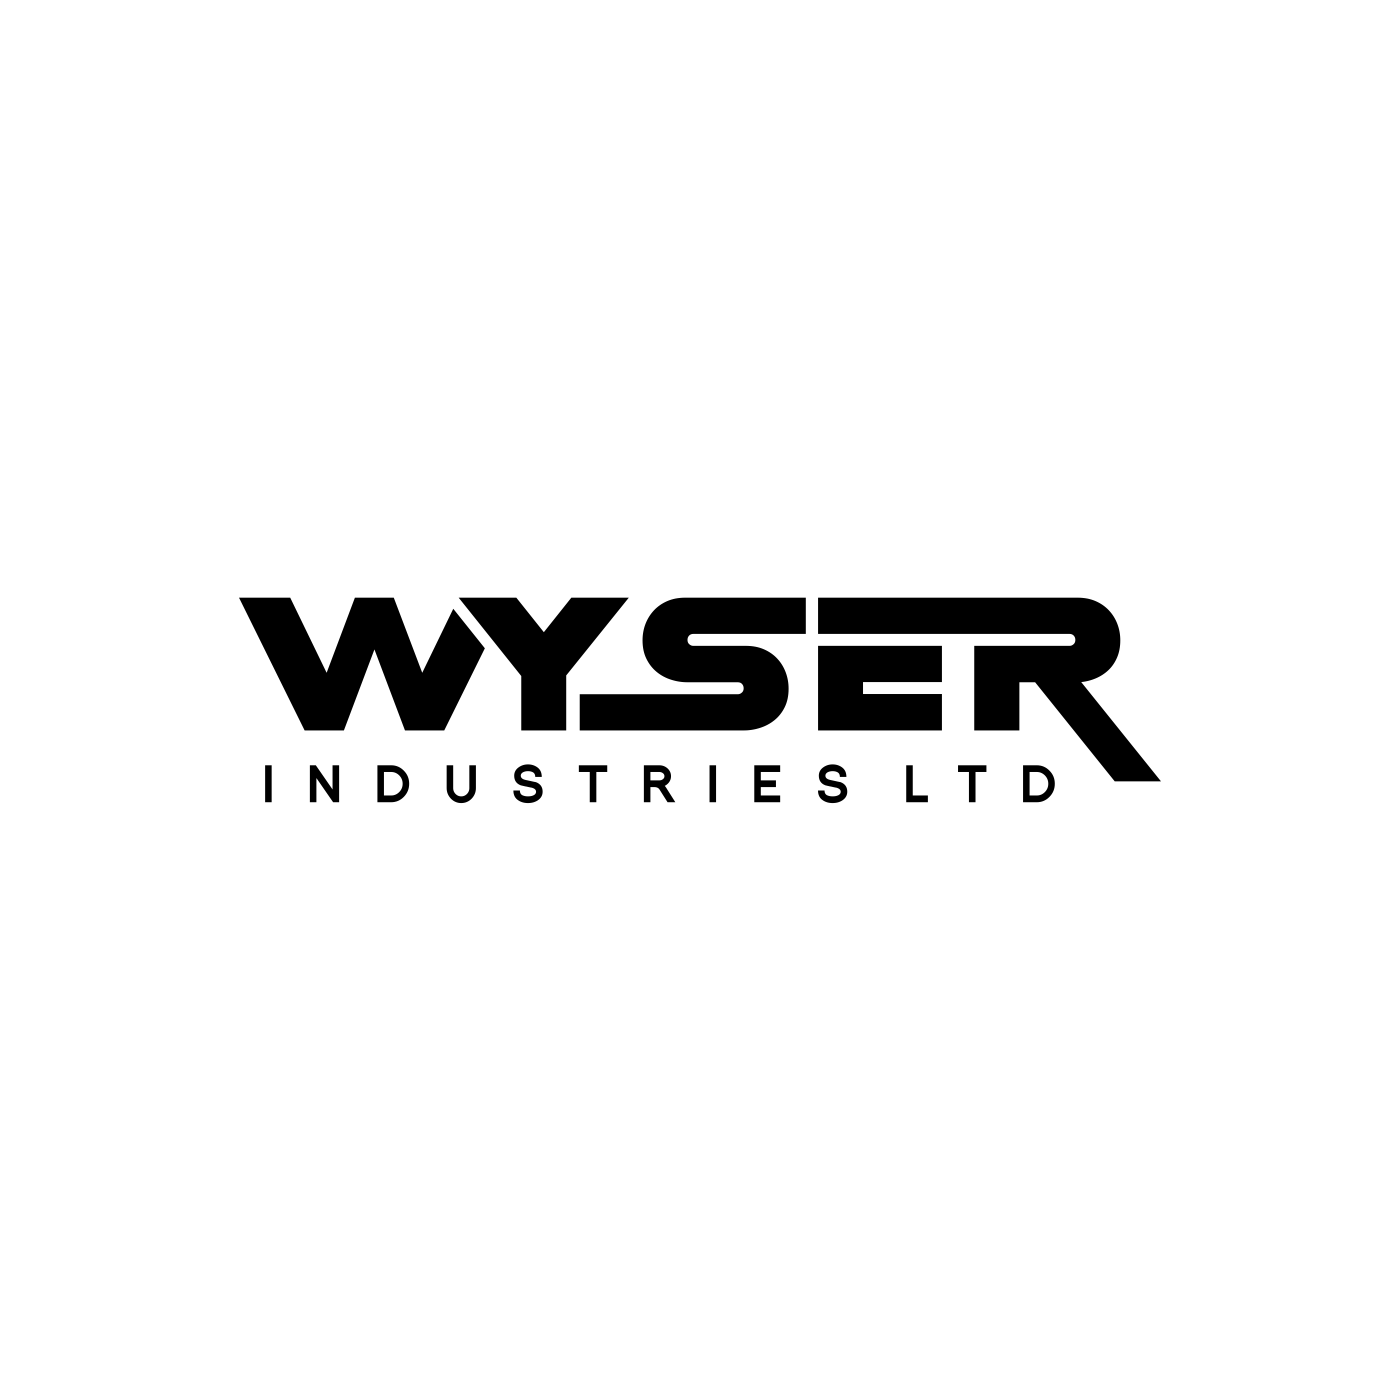 Clean, professional logo for Manufacturing Company